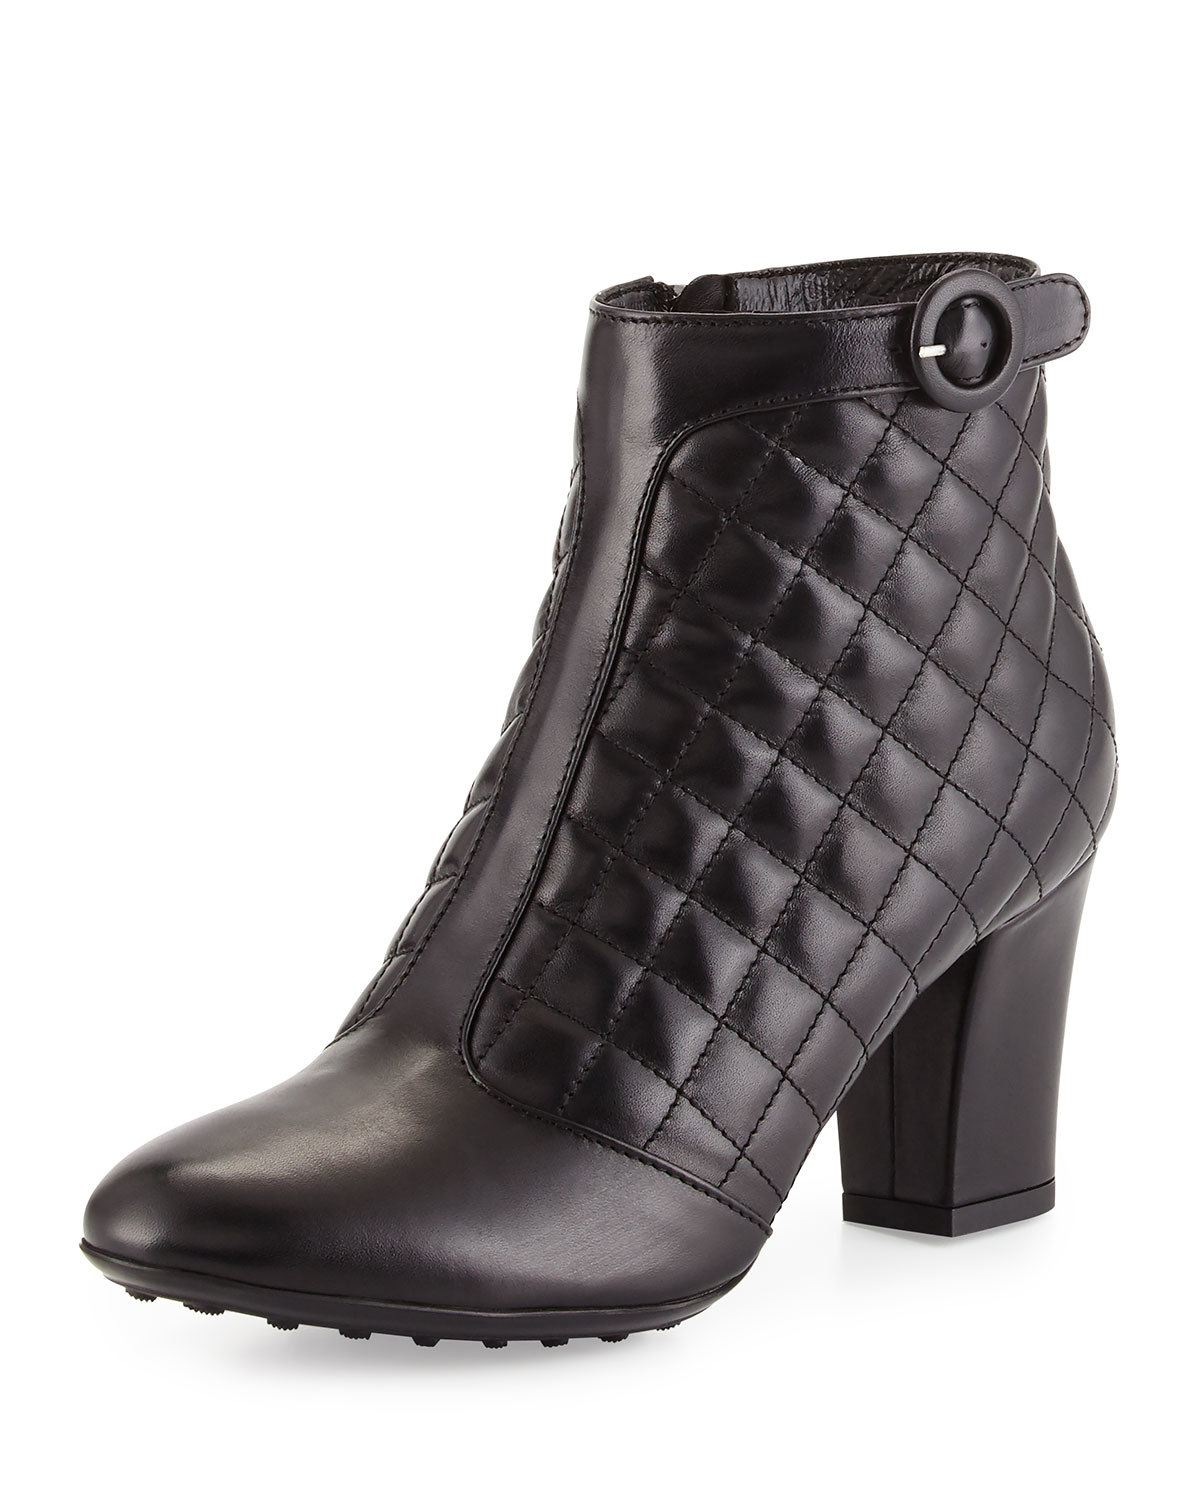 4608a12ed206f Lyst - Aquatalia Harriet Quilted Leather Bootie in Black